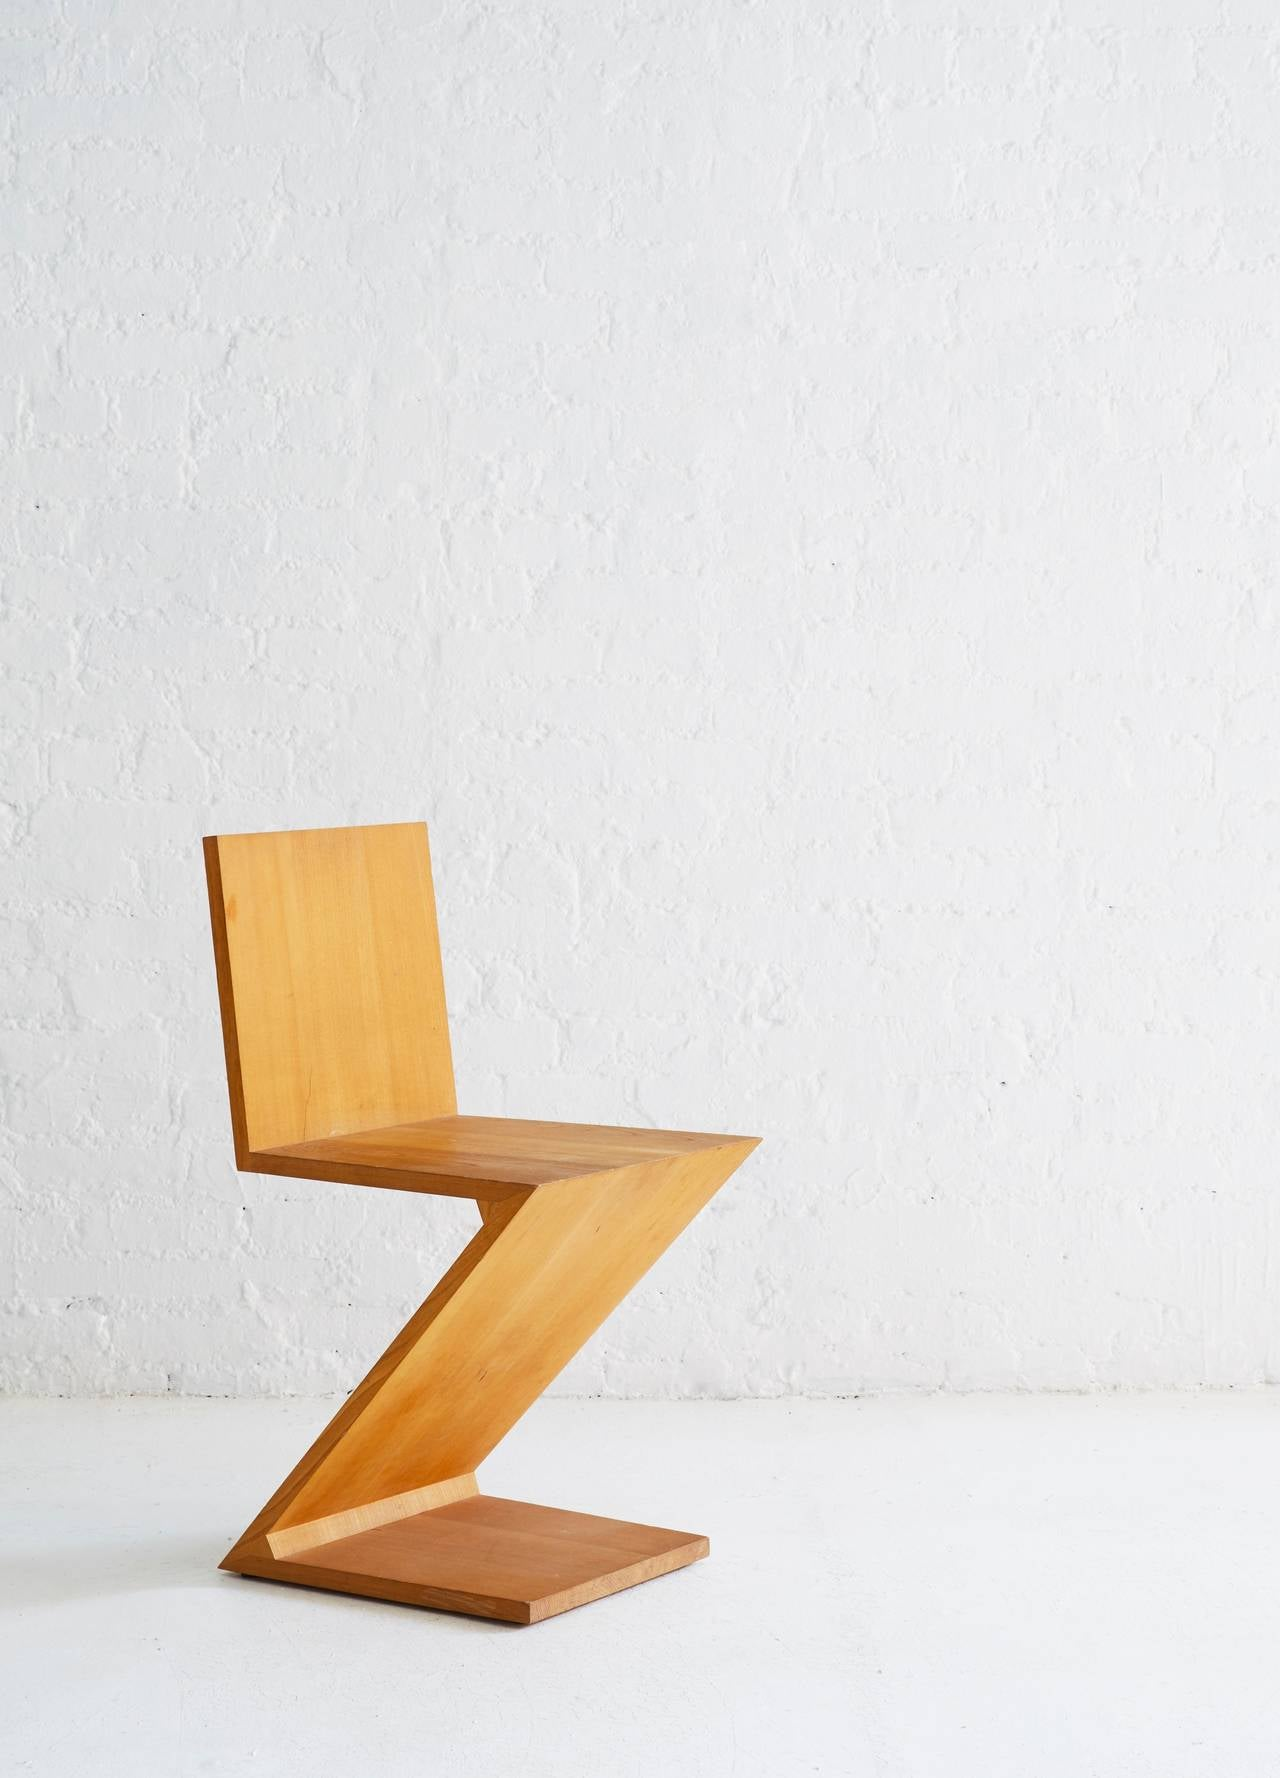 Zig-Zag chair, designed in 1934. Originally made by Meubelmakerij Adr. van Rietveld. Reissued in 1973 by Cassina, Milan. Stamped 1228 of 1973 production. Elmwood.